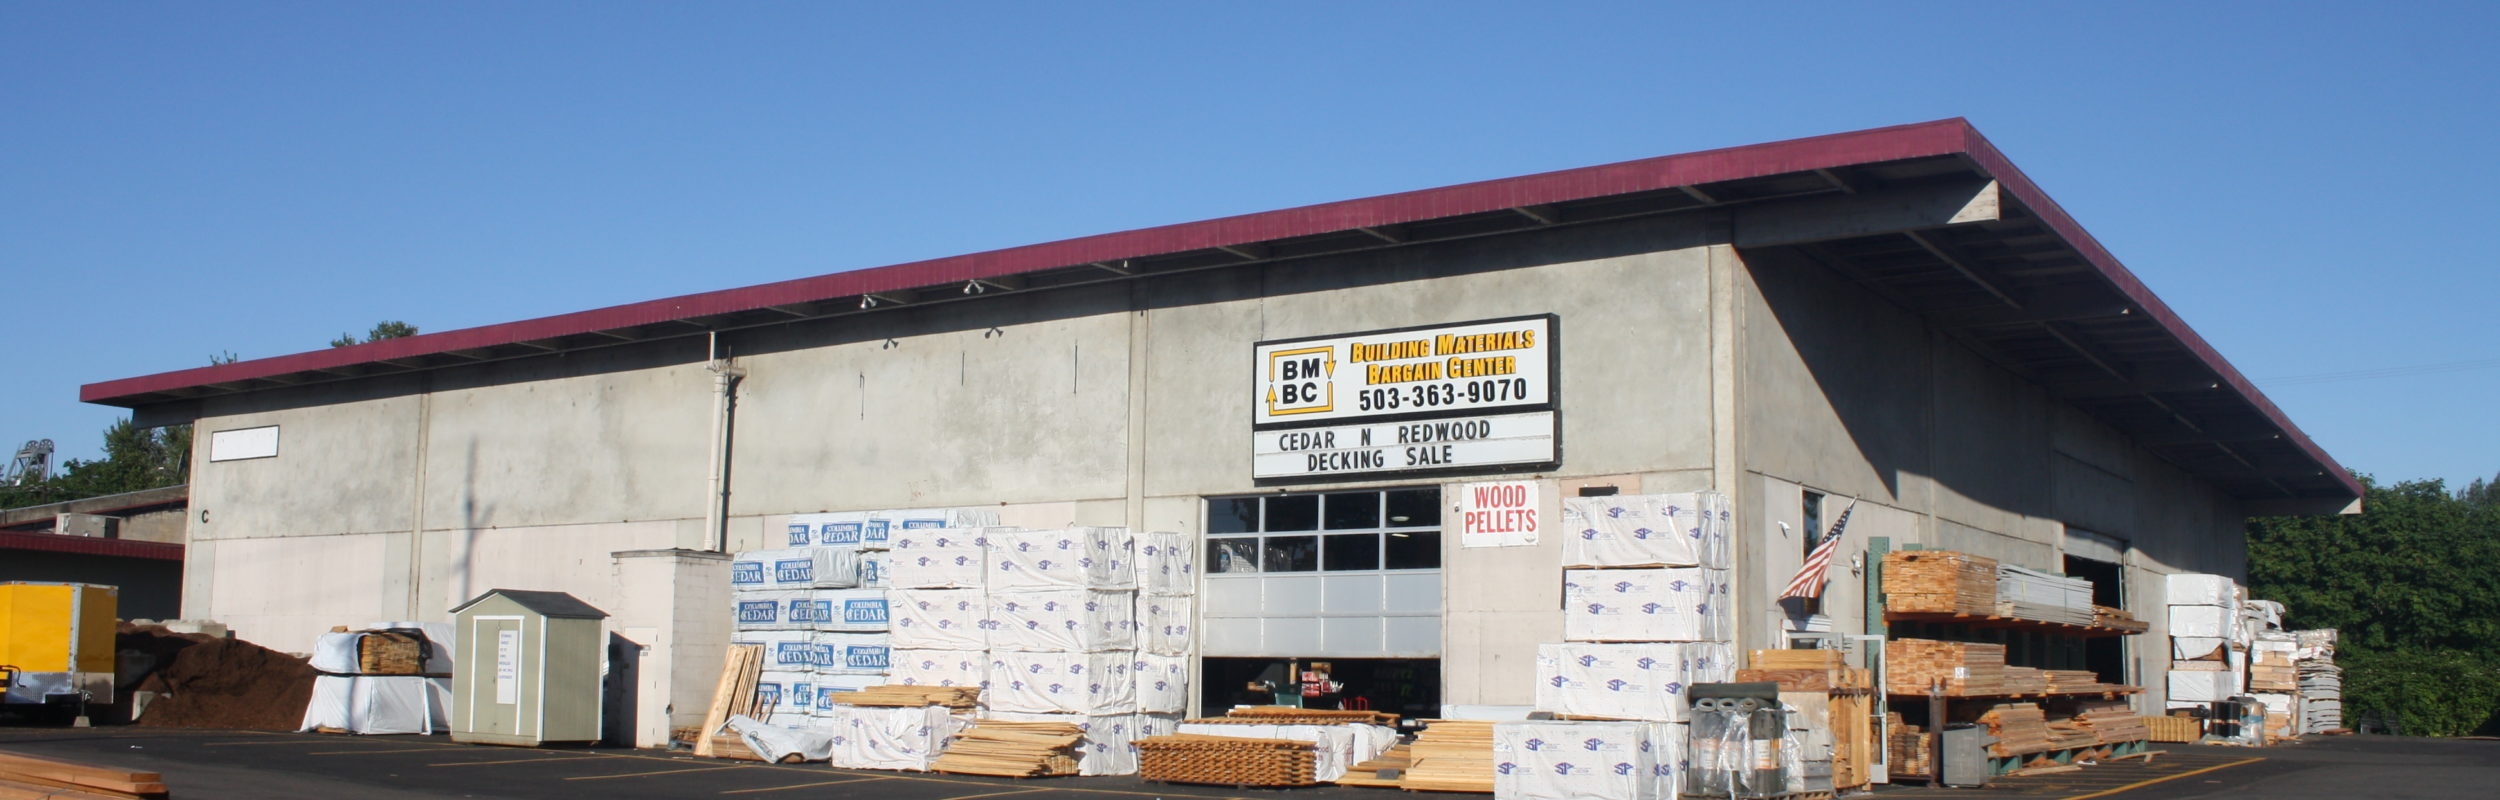 Building Materials Bargain Center Salem Oregon